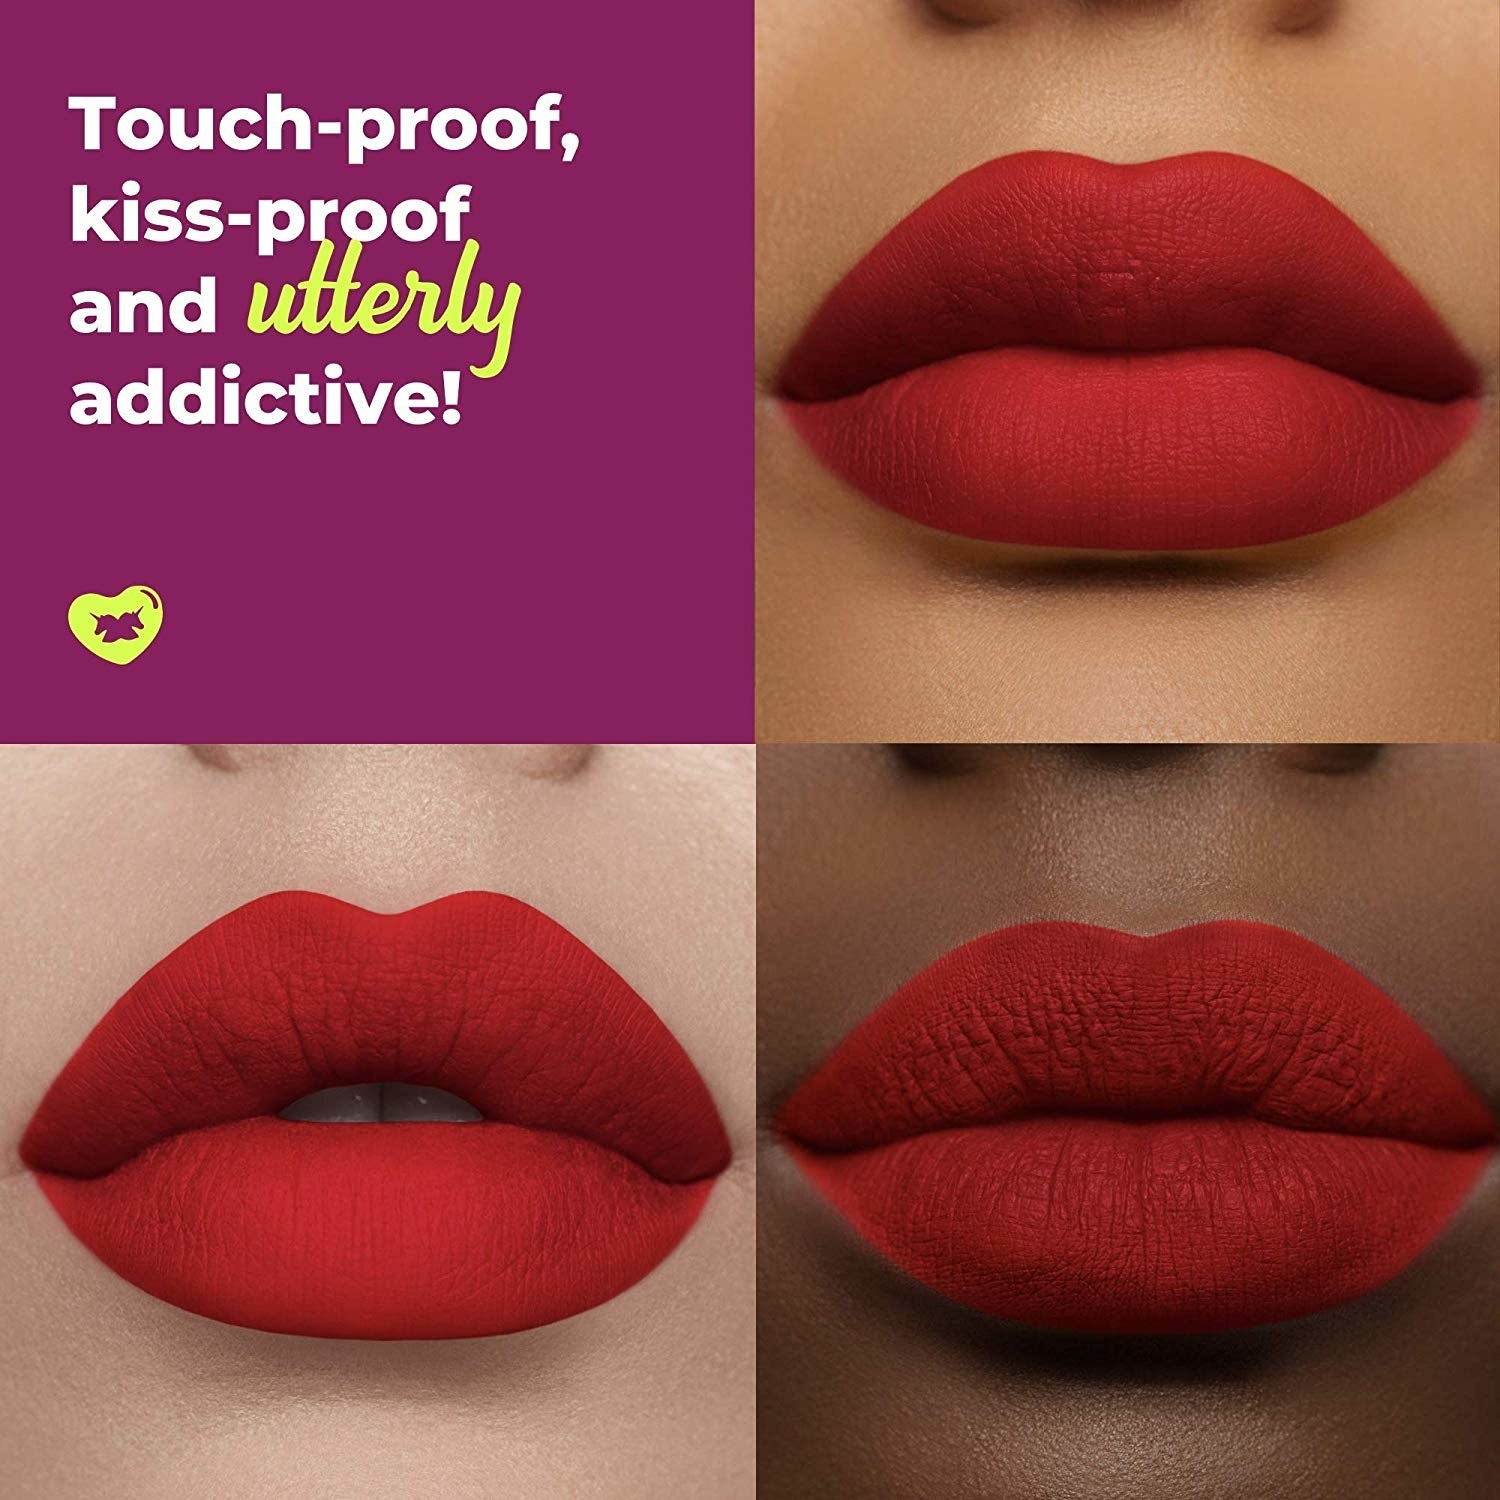 Lips with different skin tones all wearing the red lipstick